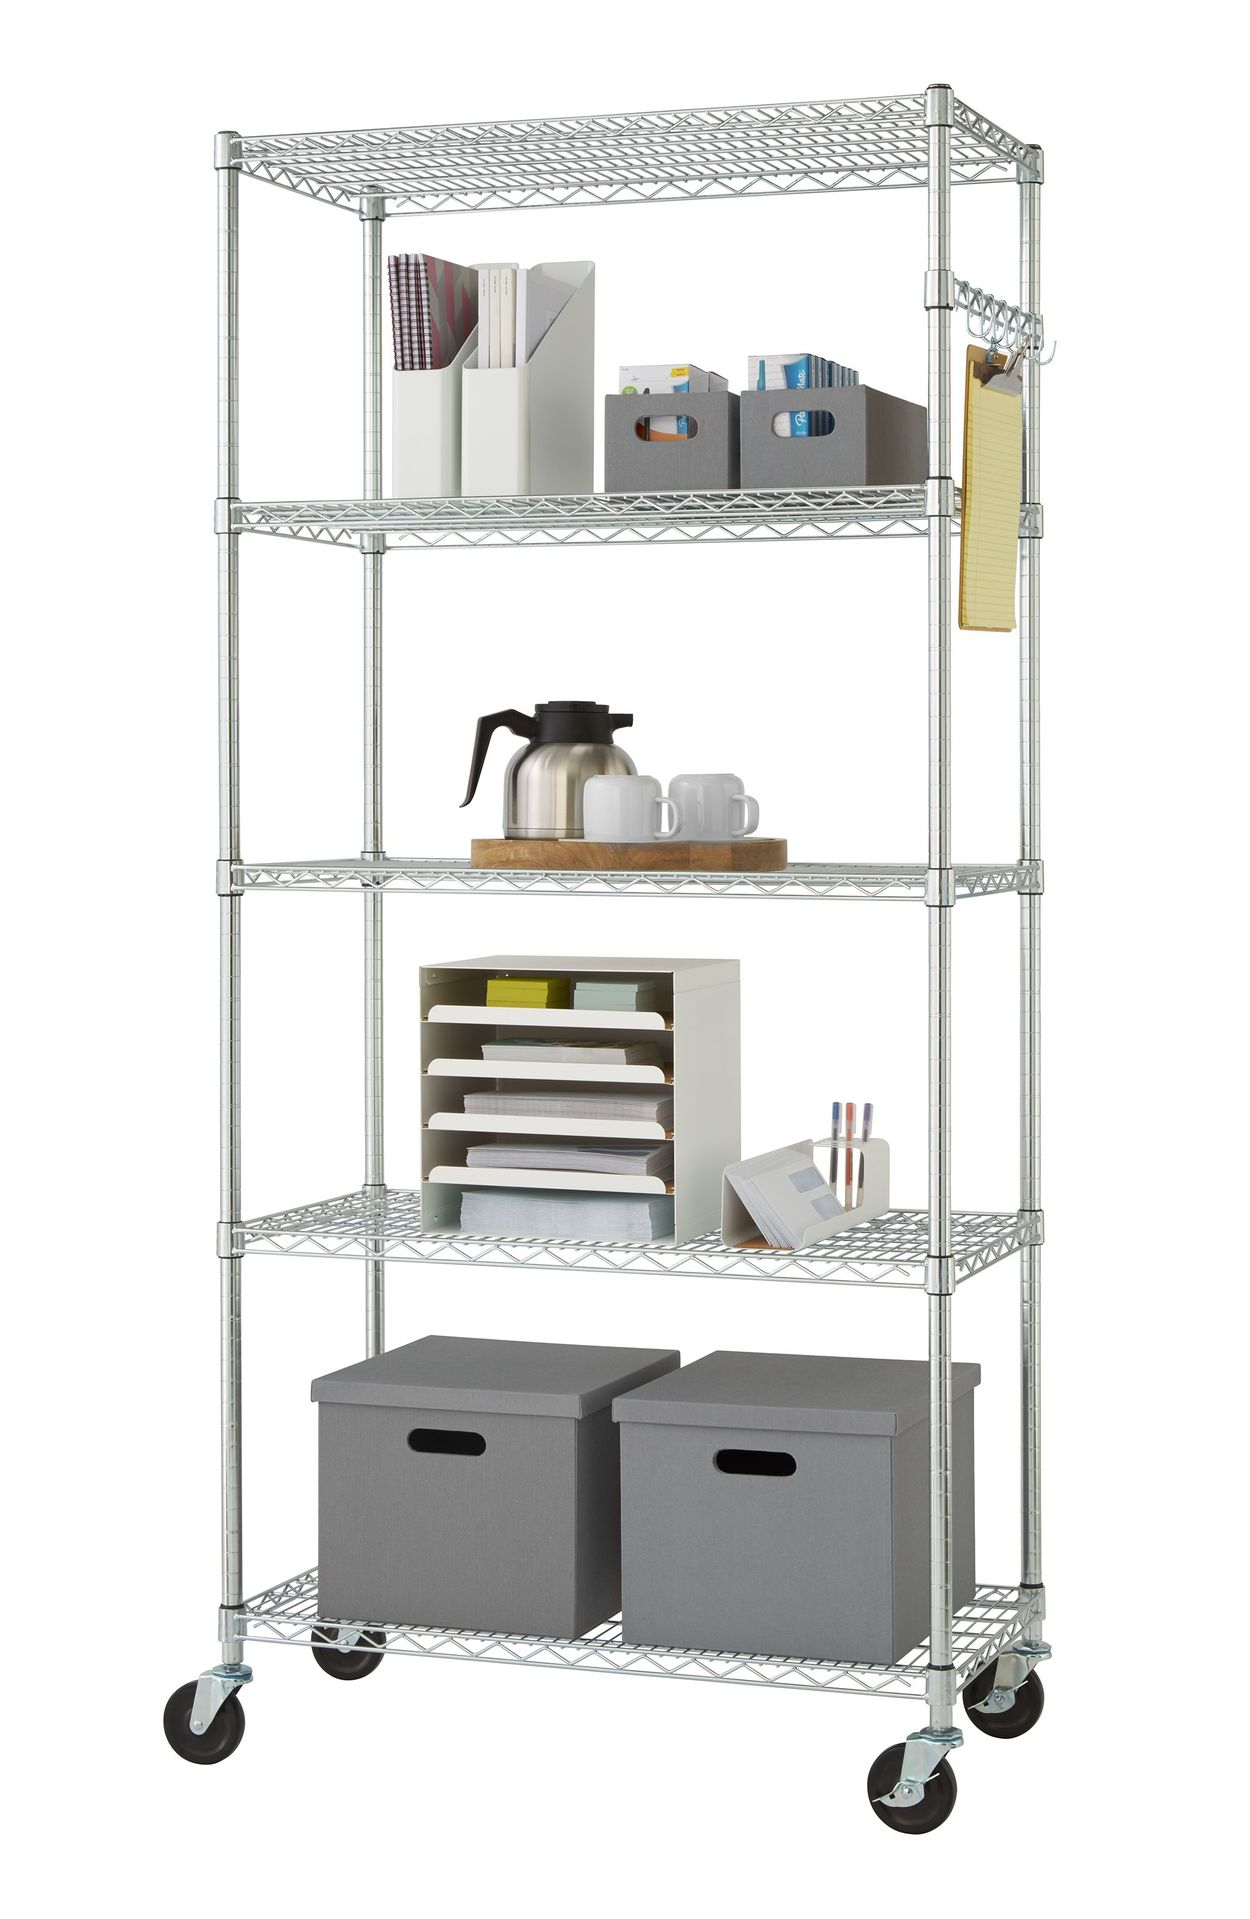 TRINITY TBFZ-0906 Wire shelving rack with props